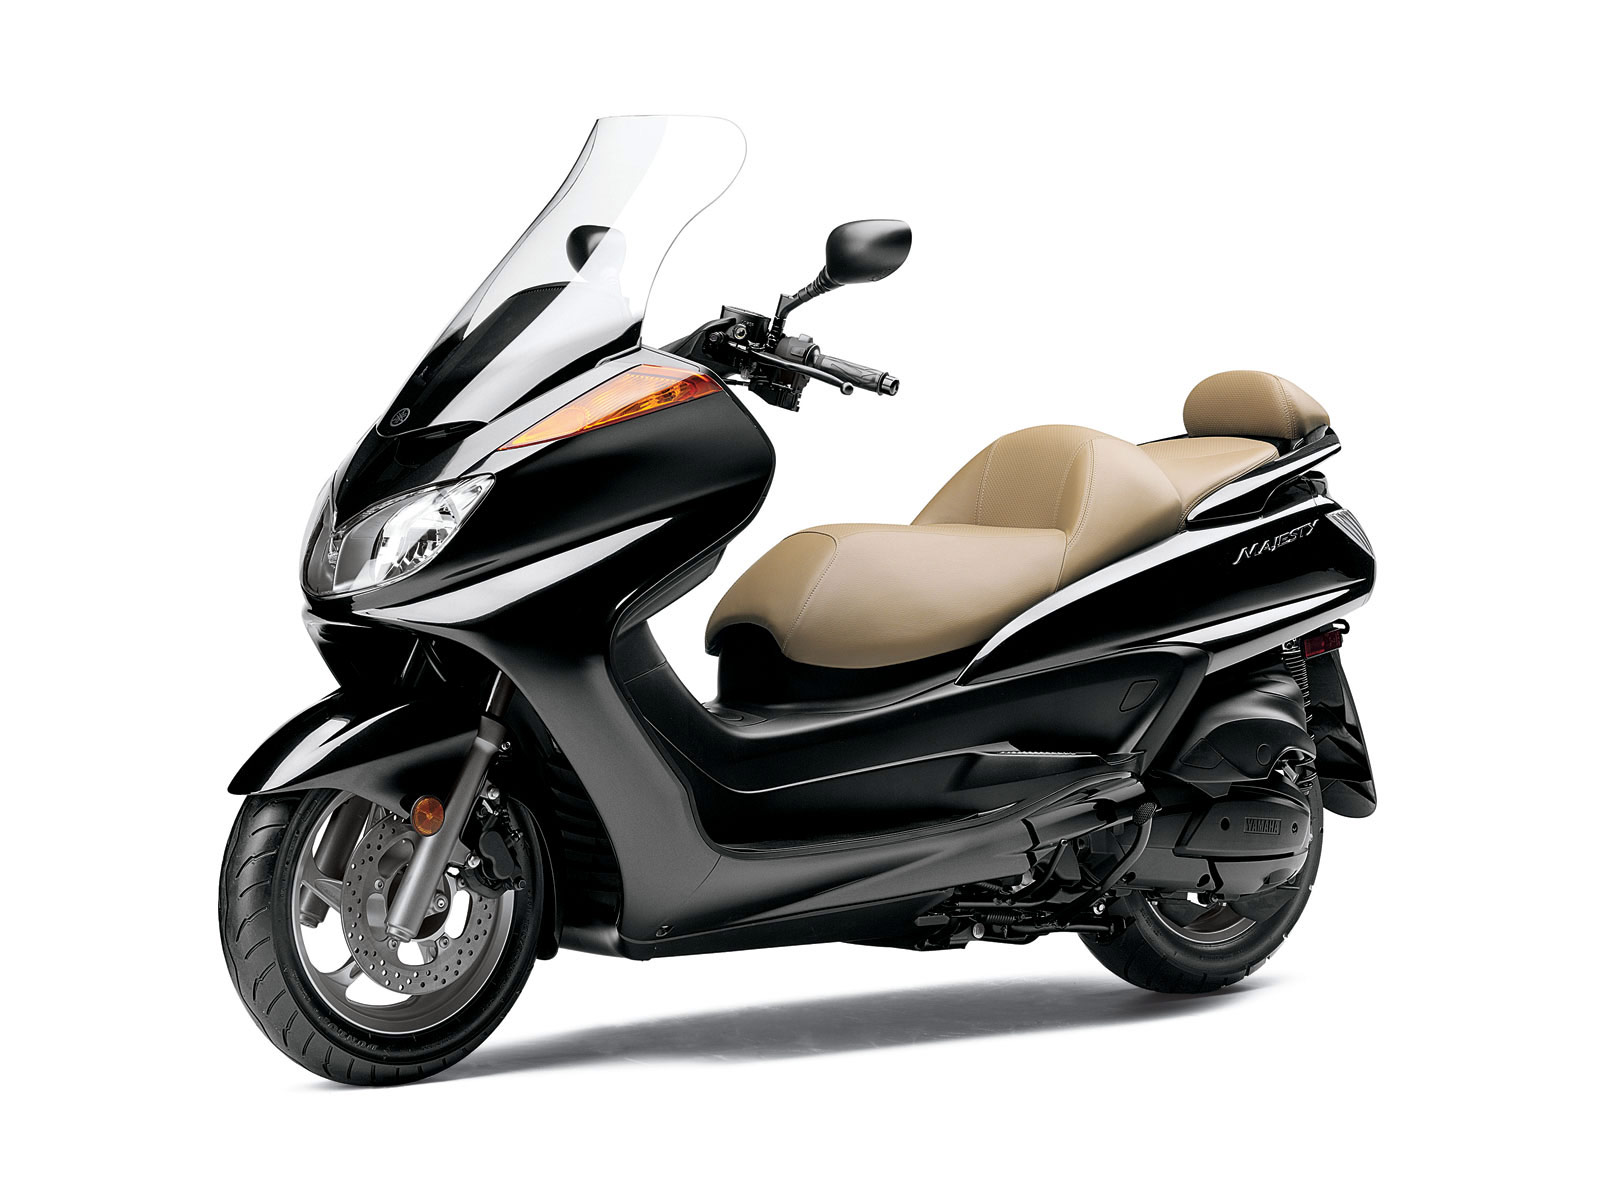 yamaha scooter 2012 majesty pictures and specifications super moto and sexy girls. Black Bedroom Furniture Sets. Home Design Ideas